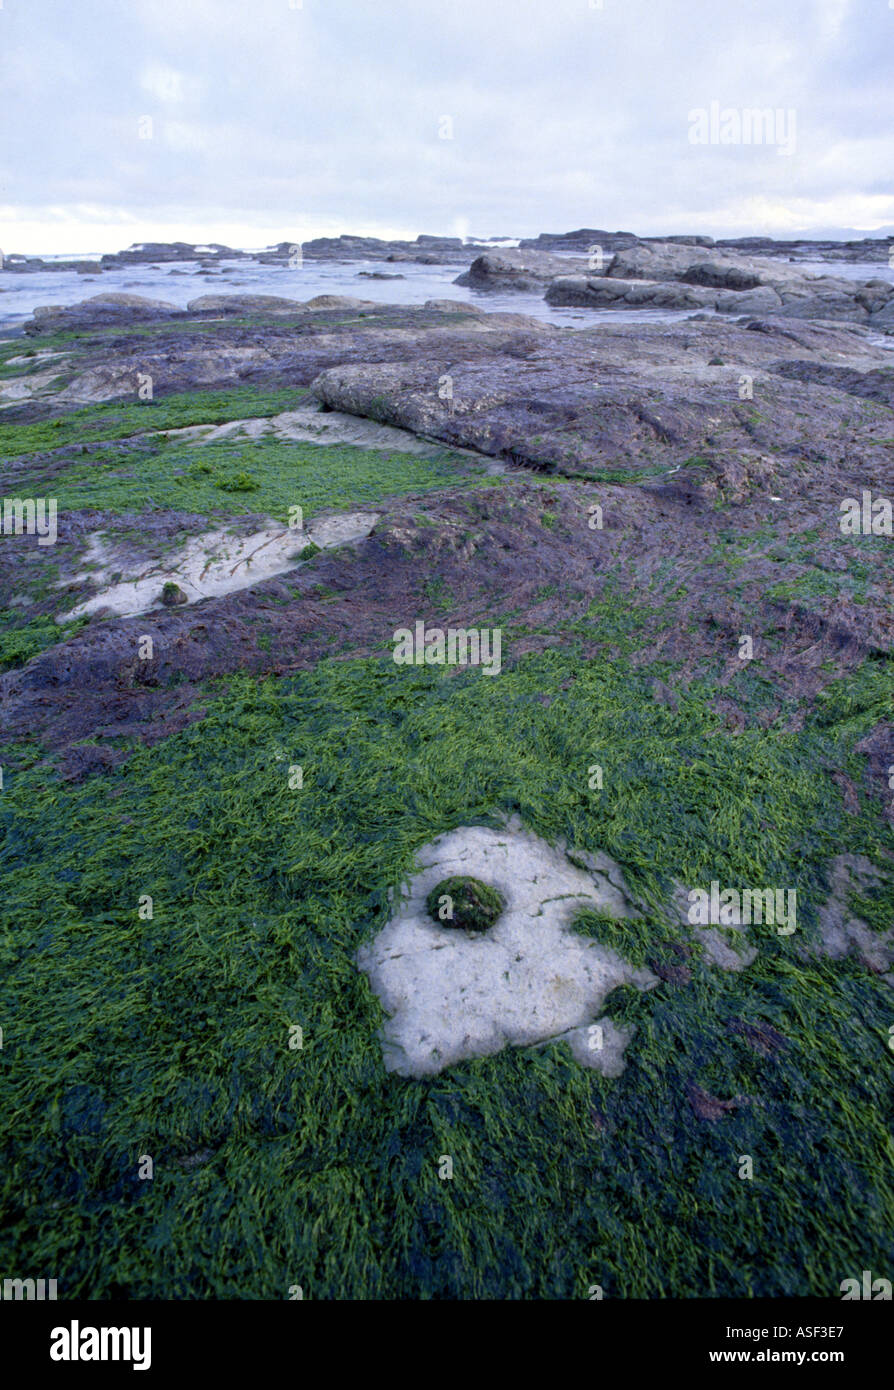 Limpet Cellana radians on flat rocky shore showing its farm the area it keeps clear of seaweed Kaikoura New Zealand - Stock Image